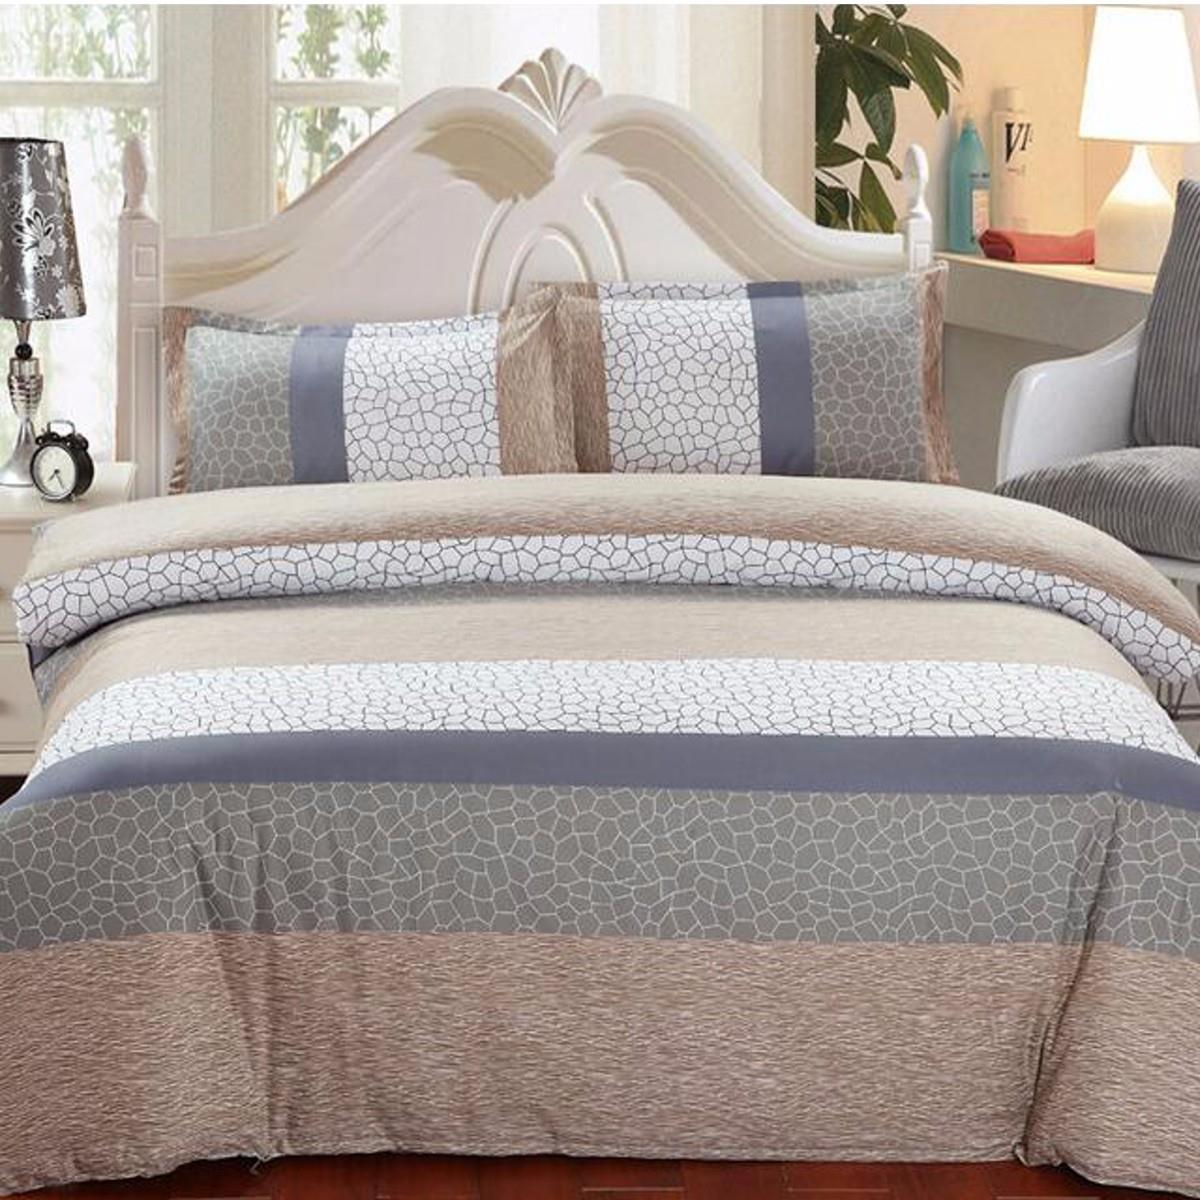 Duvet Cover Bedding Sets 4pcs Set Family Designer Pillow